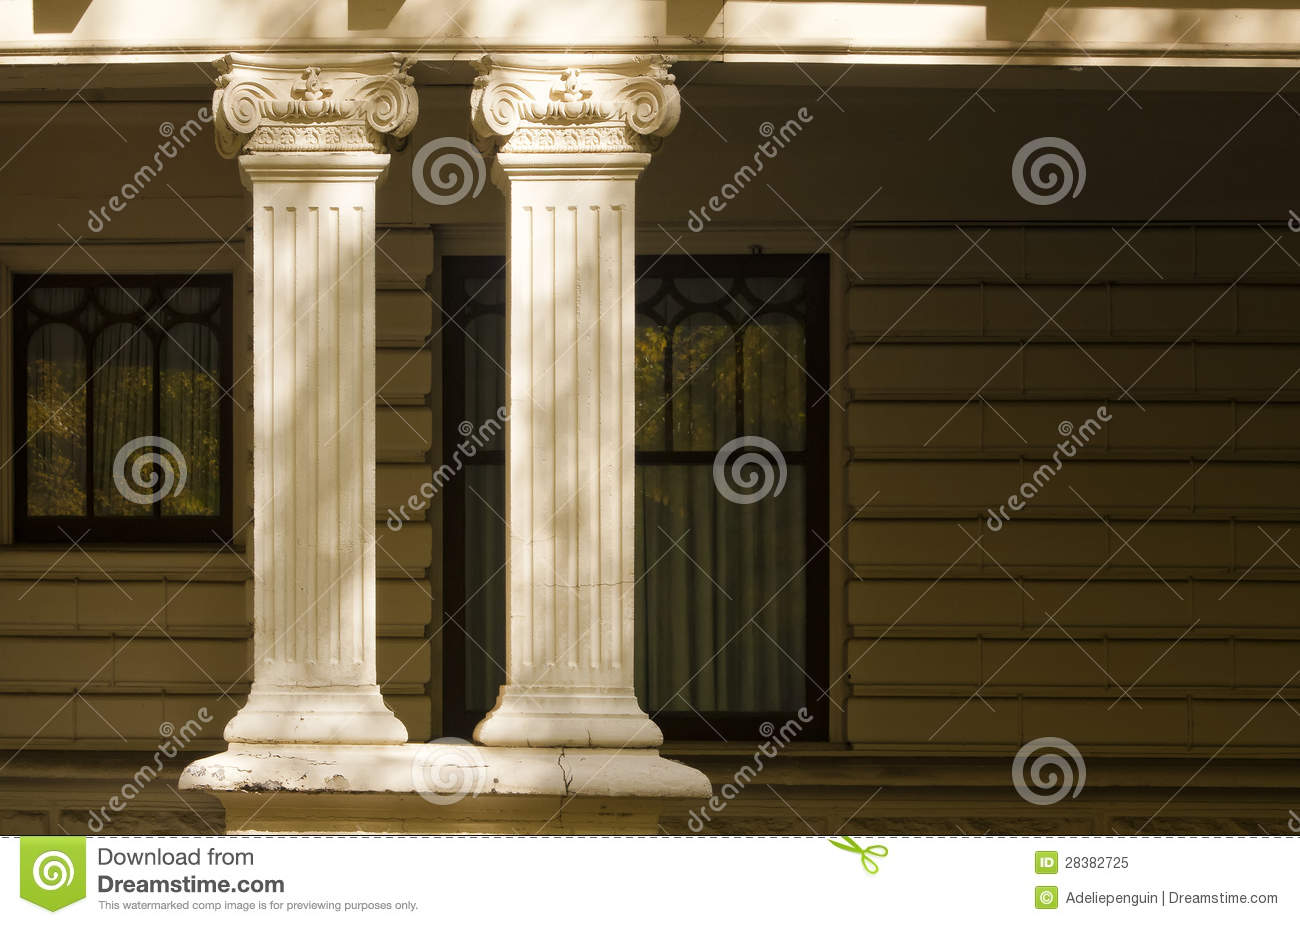 Decorative columns residential architecture stock image for Decorative columns